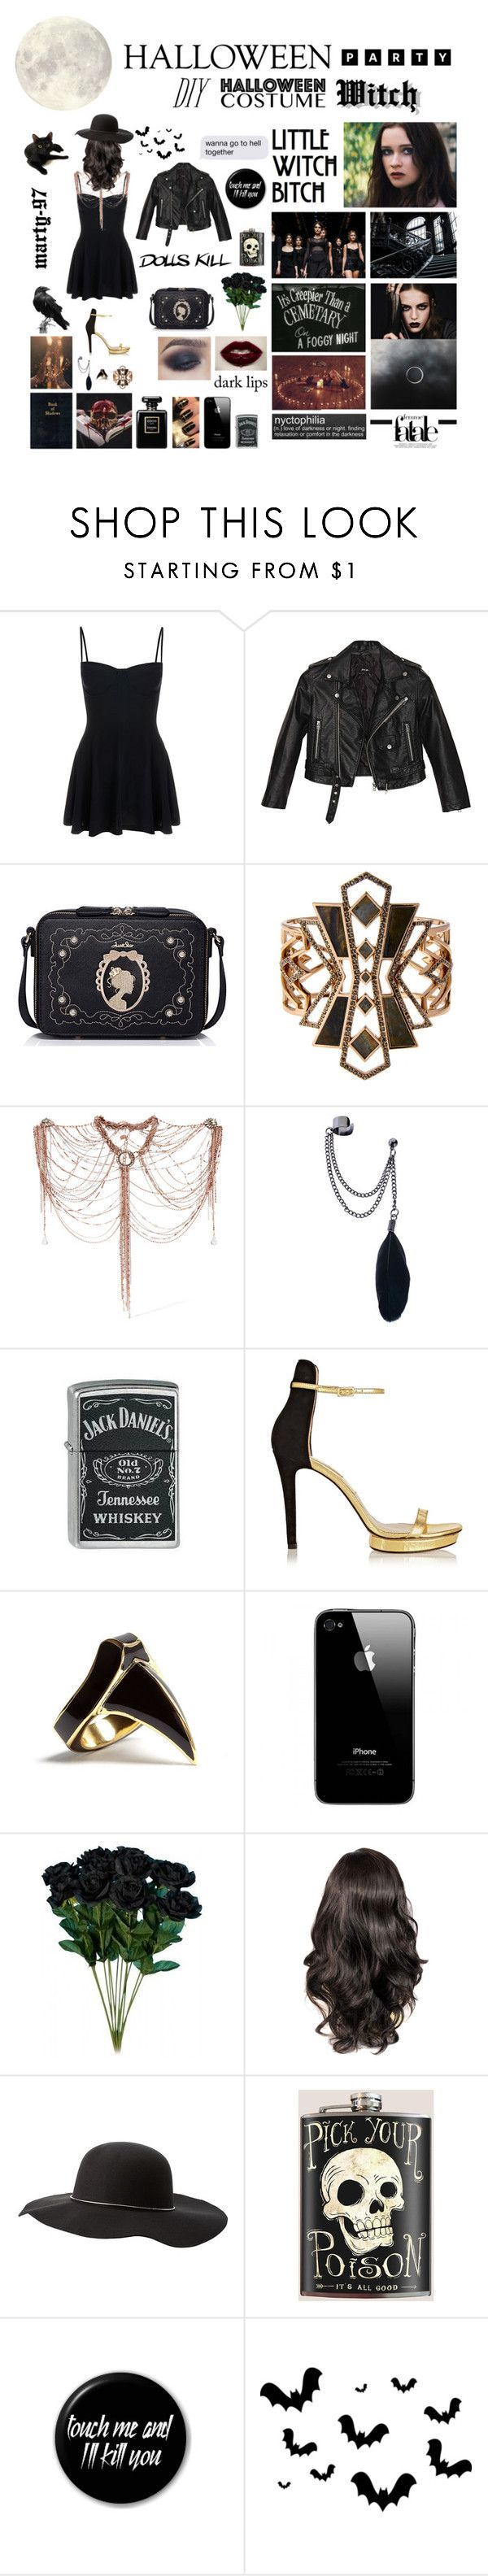 Halloween Party: Witch!! by marty-97 on Polyvore featuring moda, Nasty Gal, Norma Kamali, Michael Kors, WithChic, Erickson Beamon, Lulu Frost, DJ By Dominic Jones, Charlotte Russe and Zippo